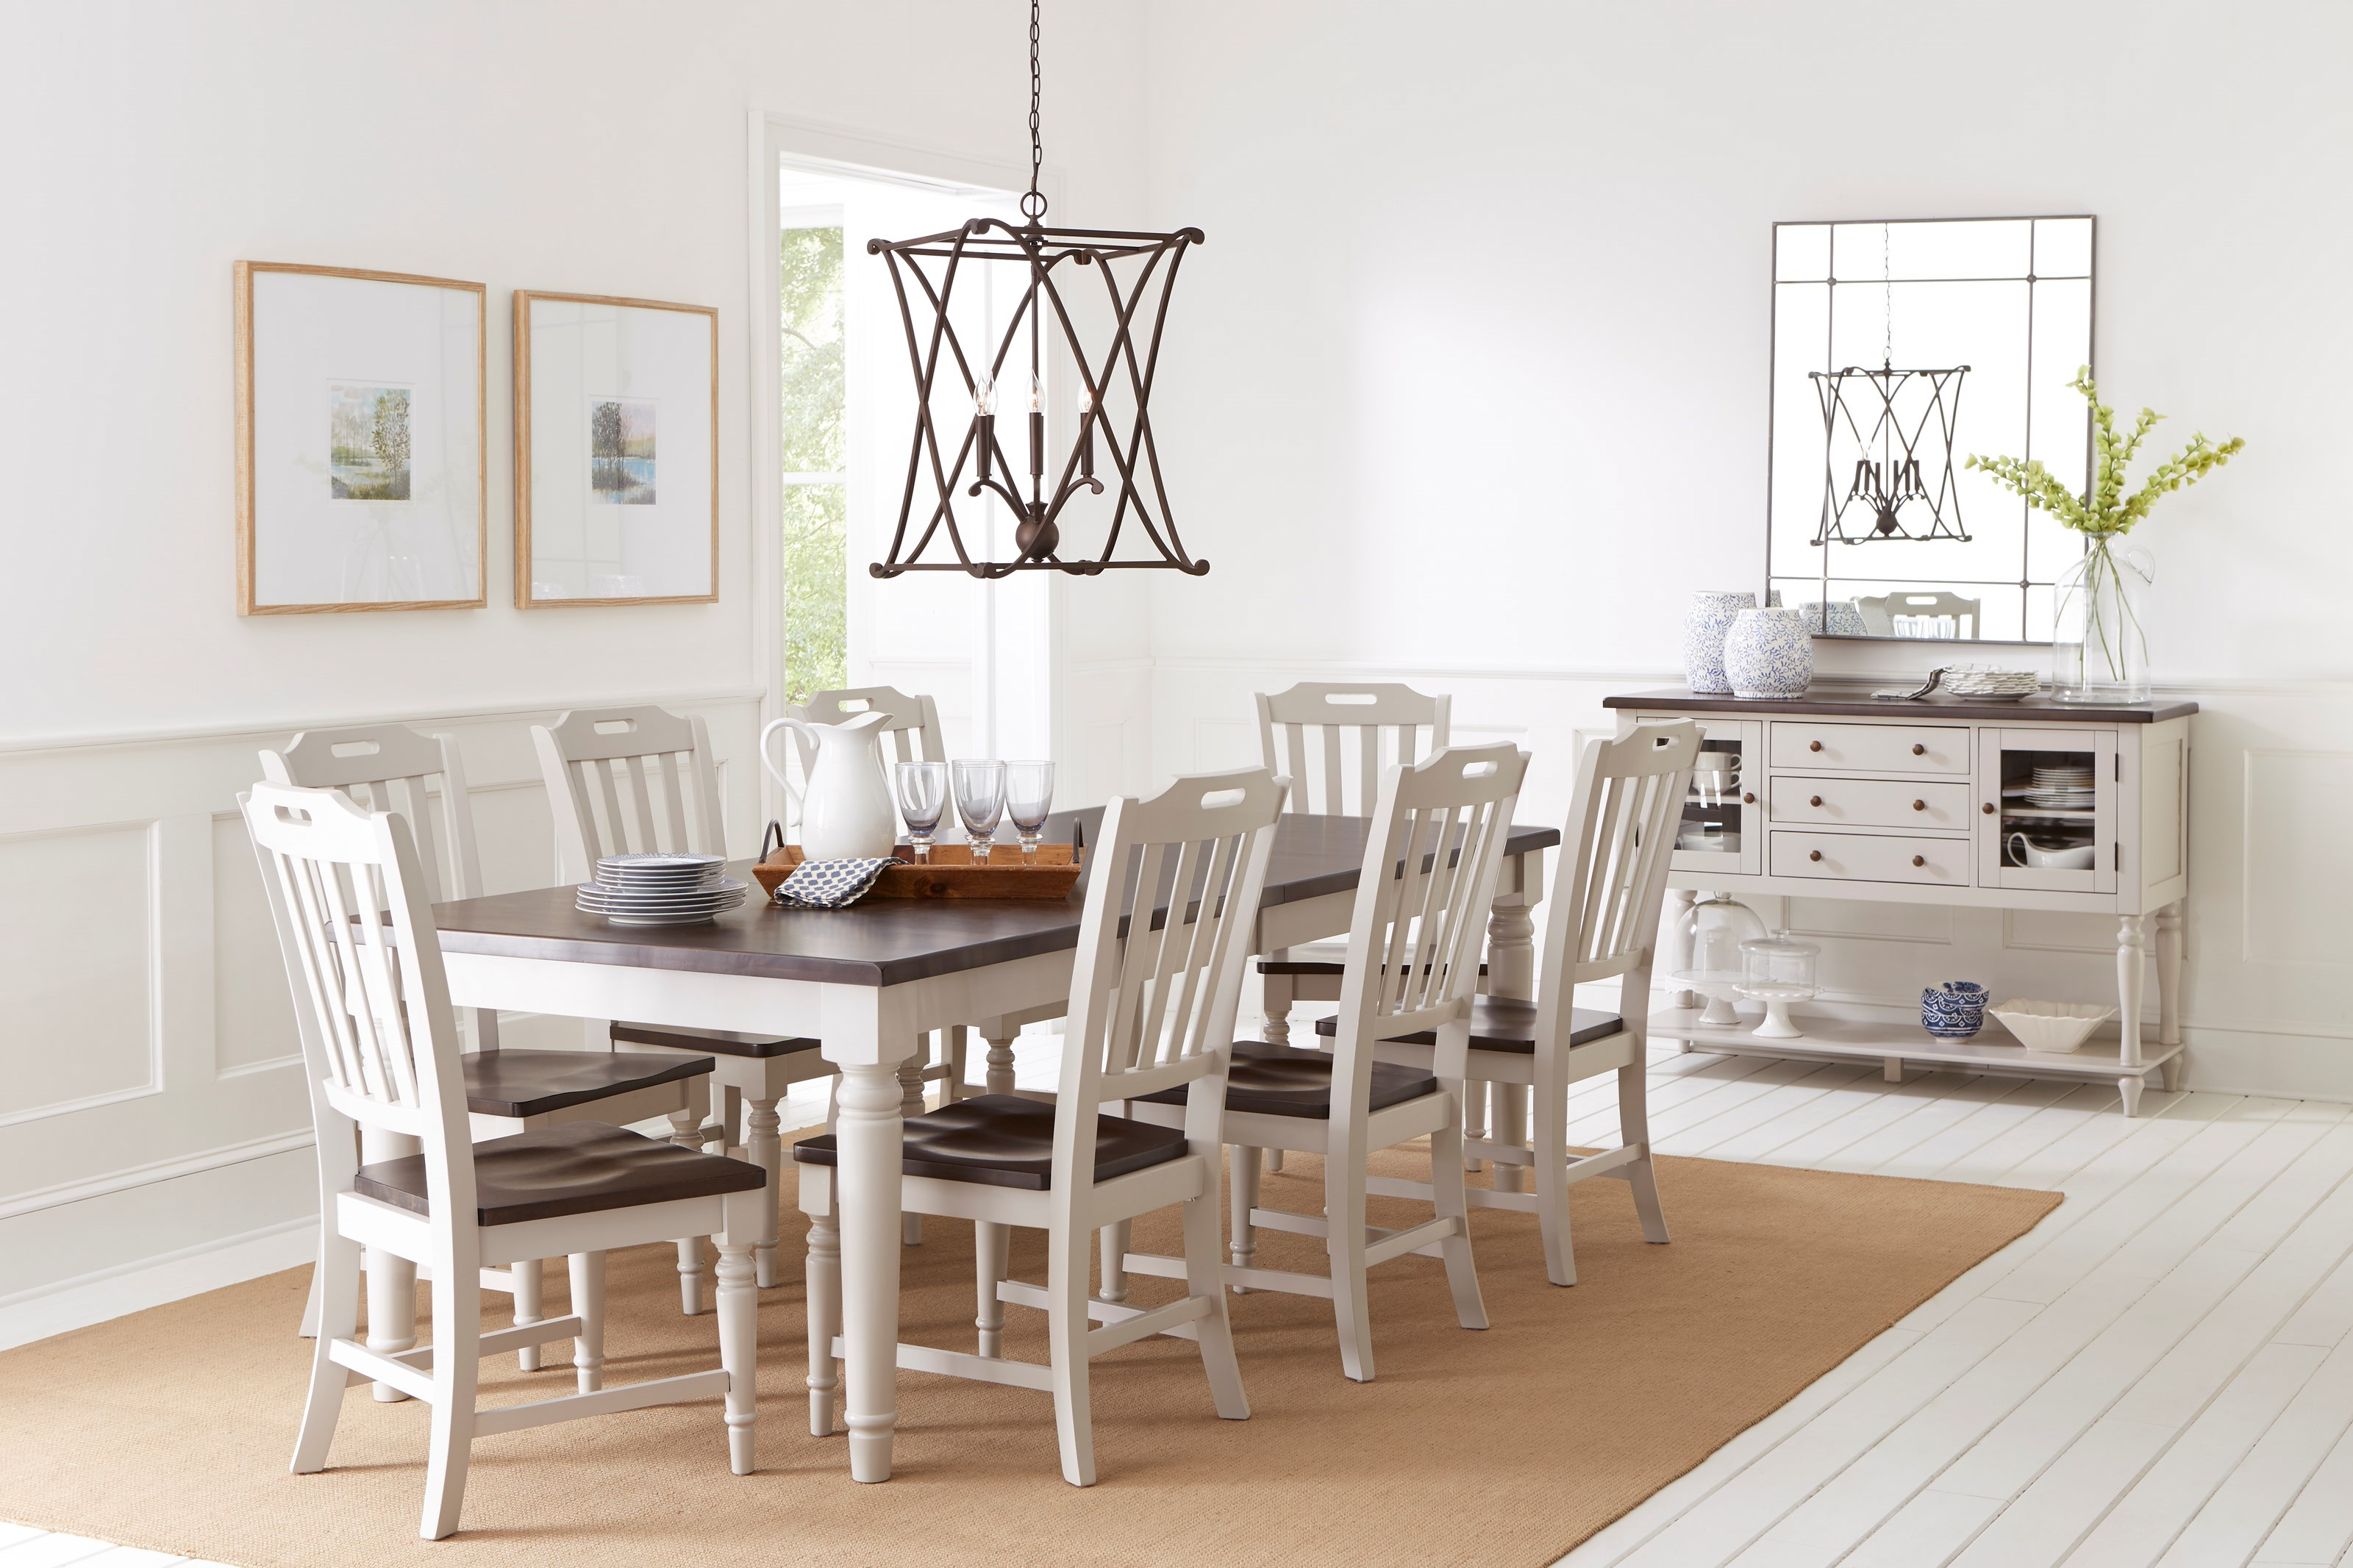 Beau Jofran Orchard Park Dining Table With 8 Chairs